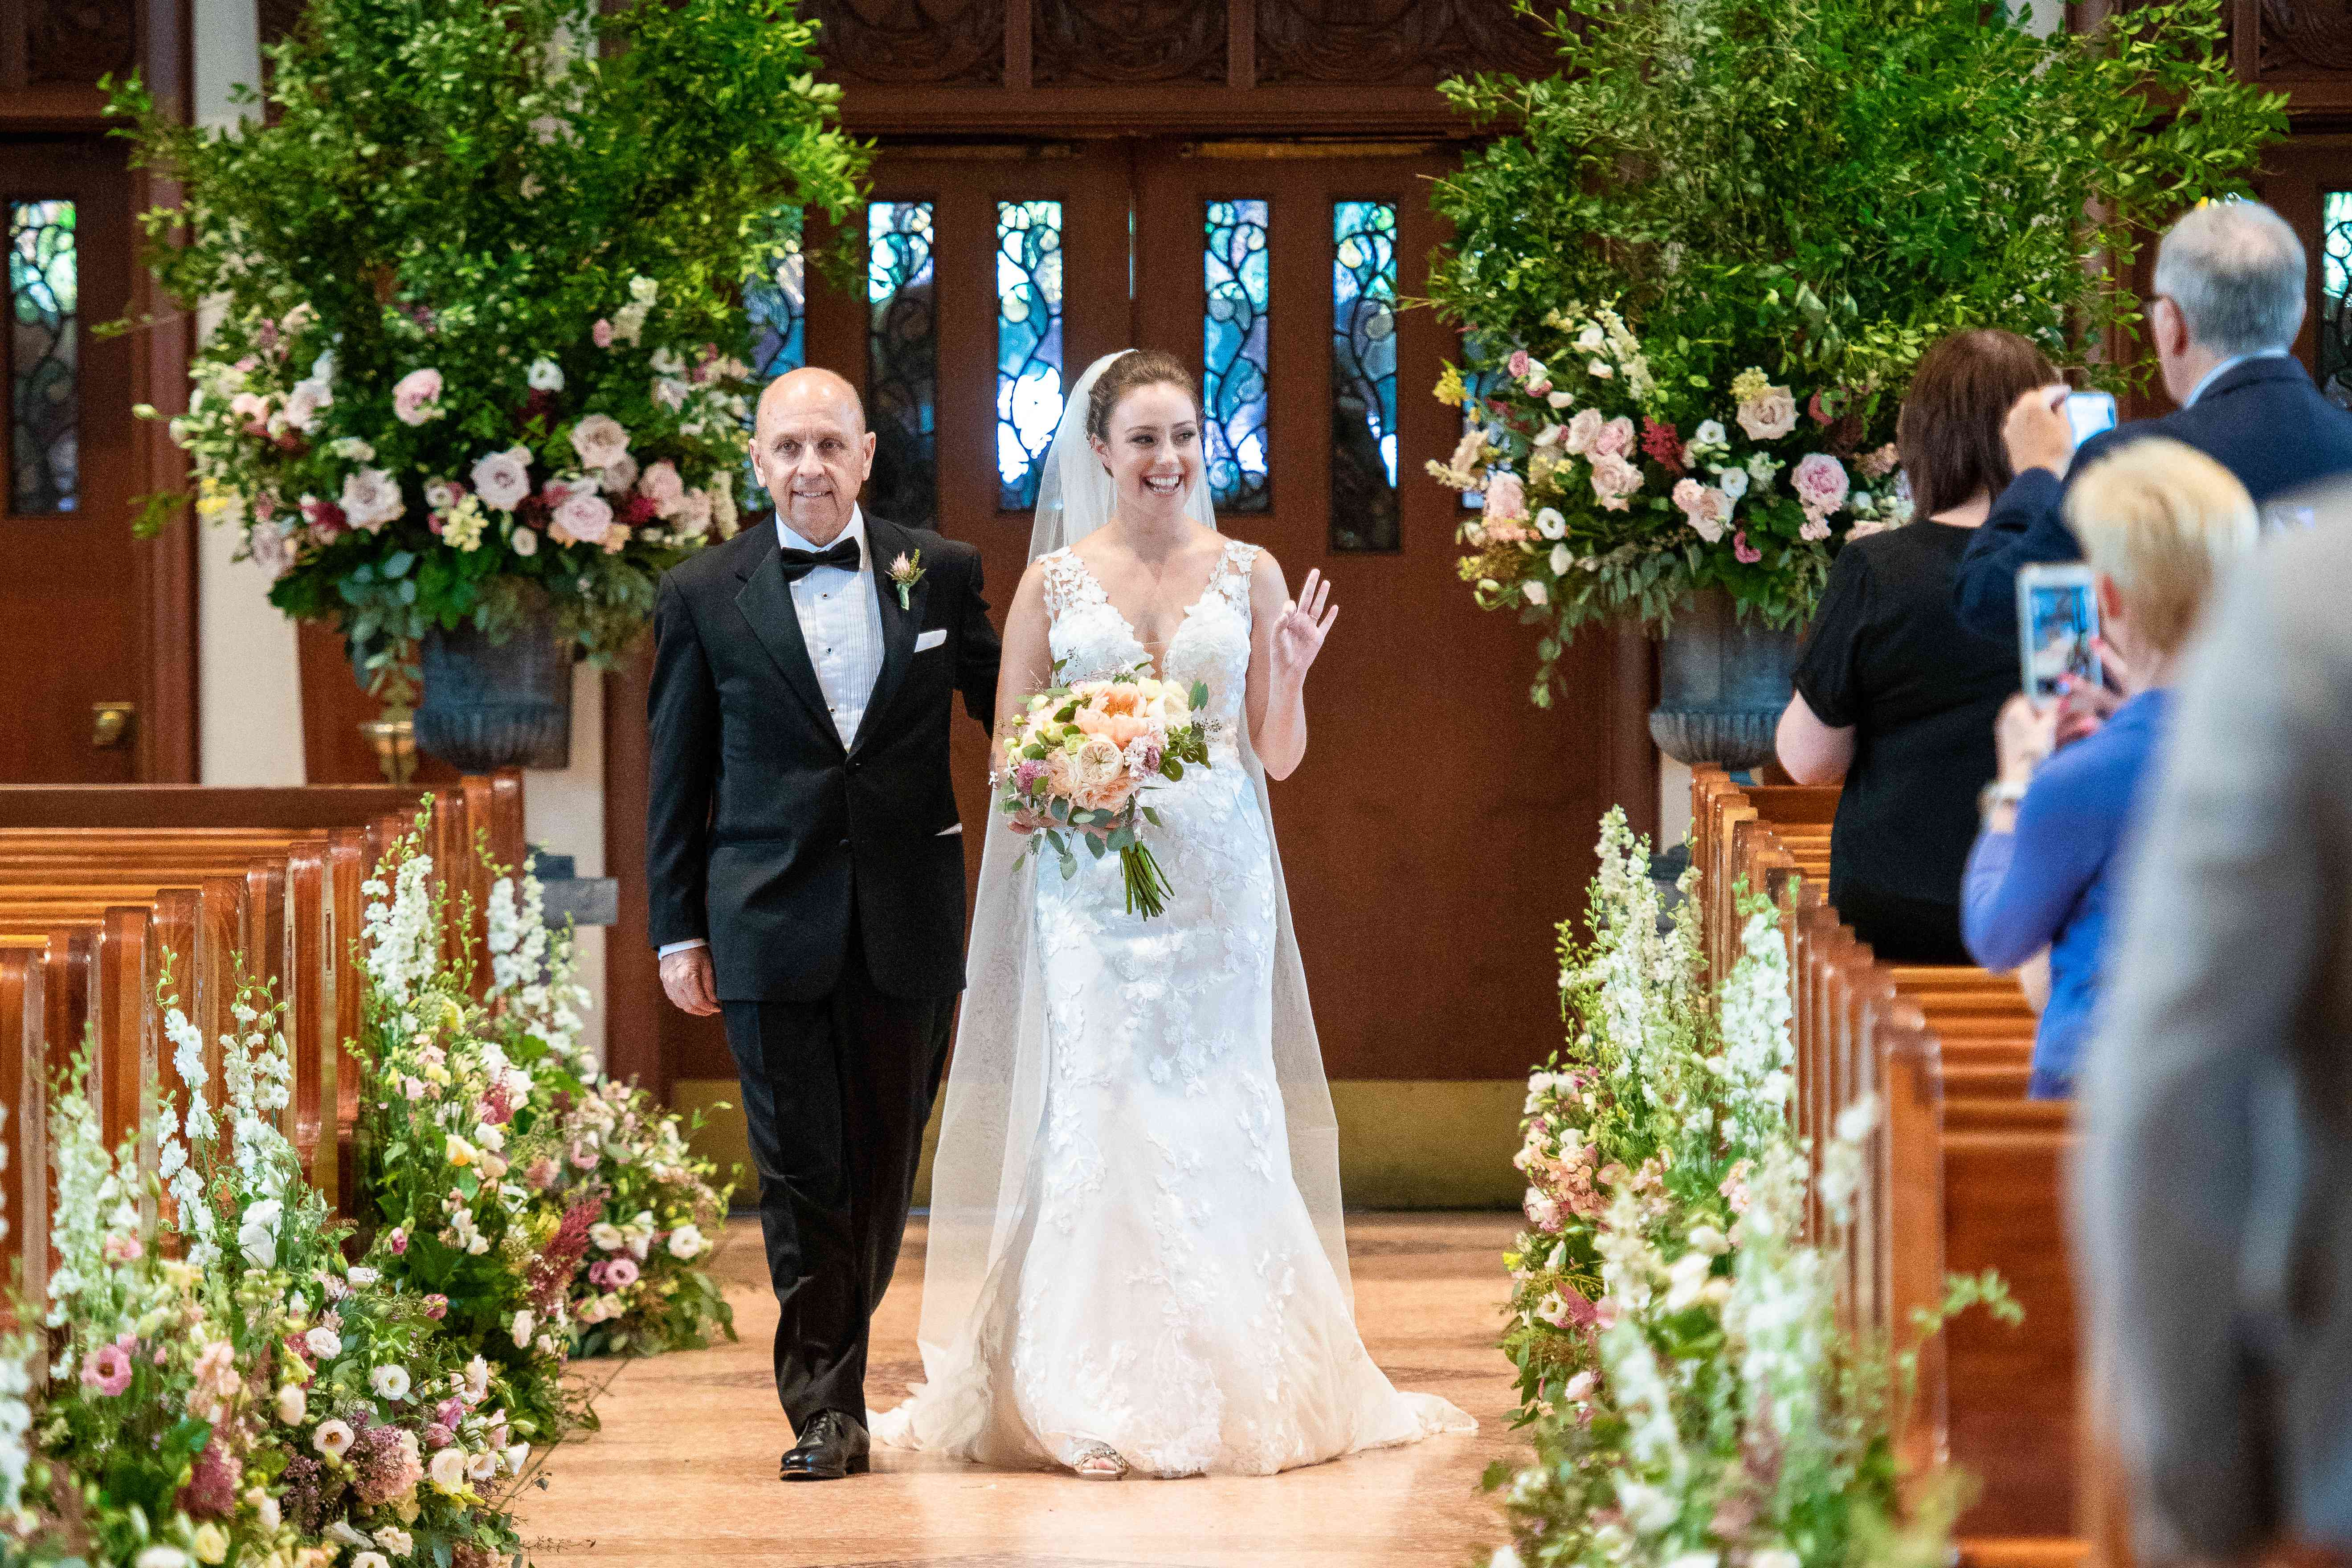 <p>bride and father of the bride walking down aisle</p><br><br>